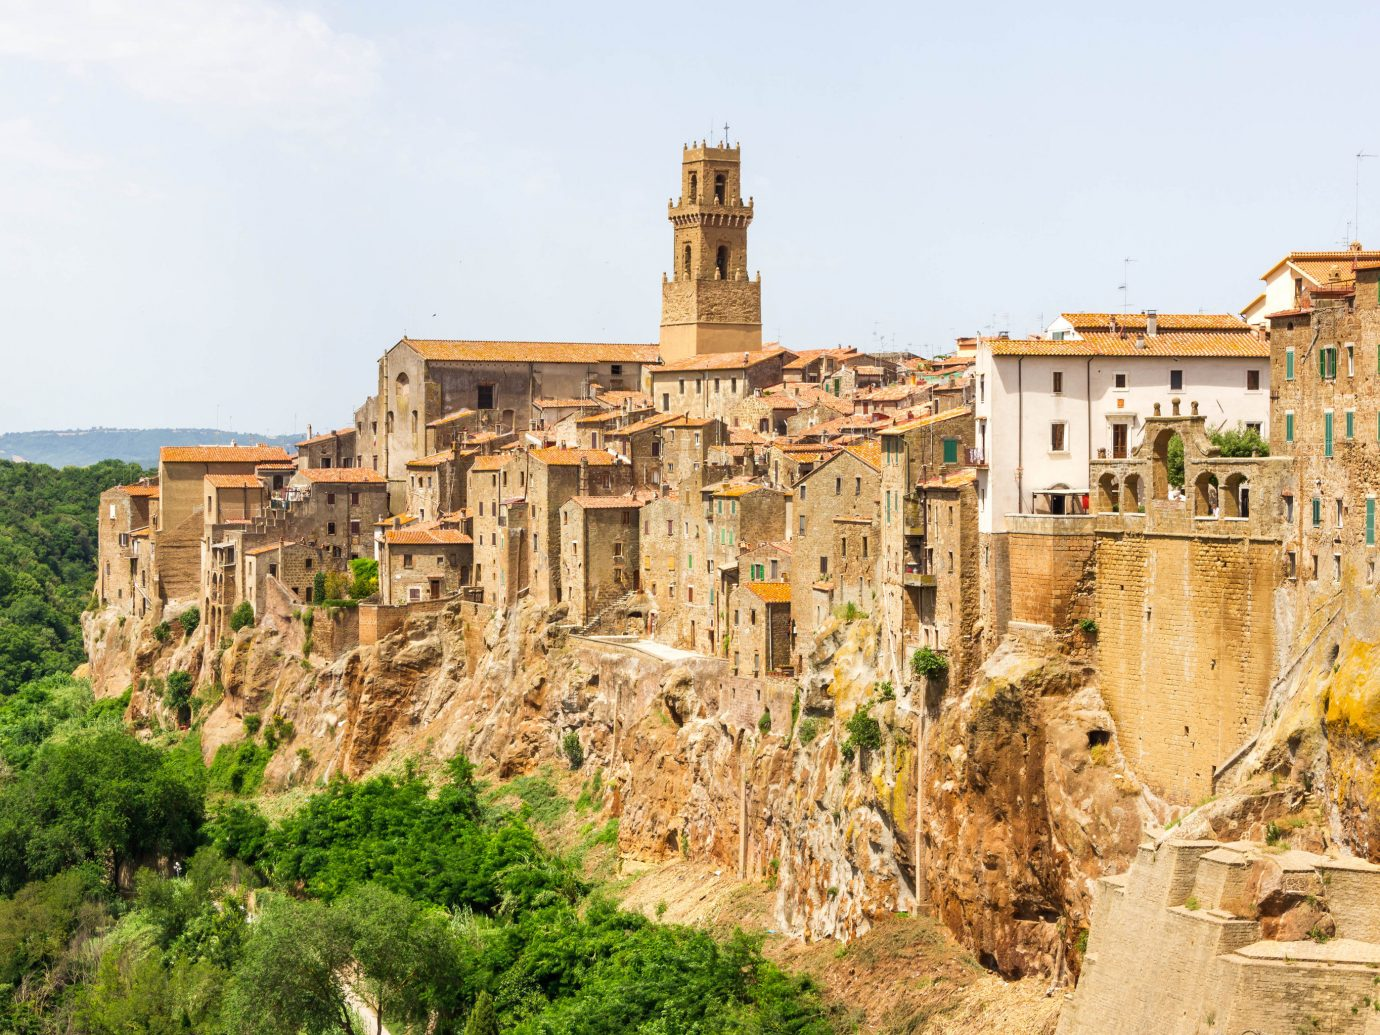 Trip Ideas outdoor building Town Ruins ancient history wall human settlement vacation fortification tourism Village terrain monastery old castle ruin